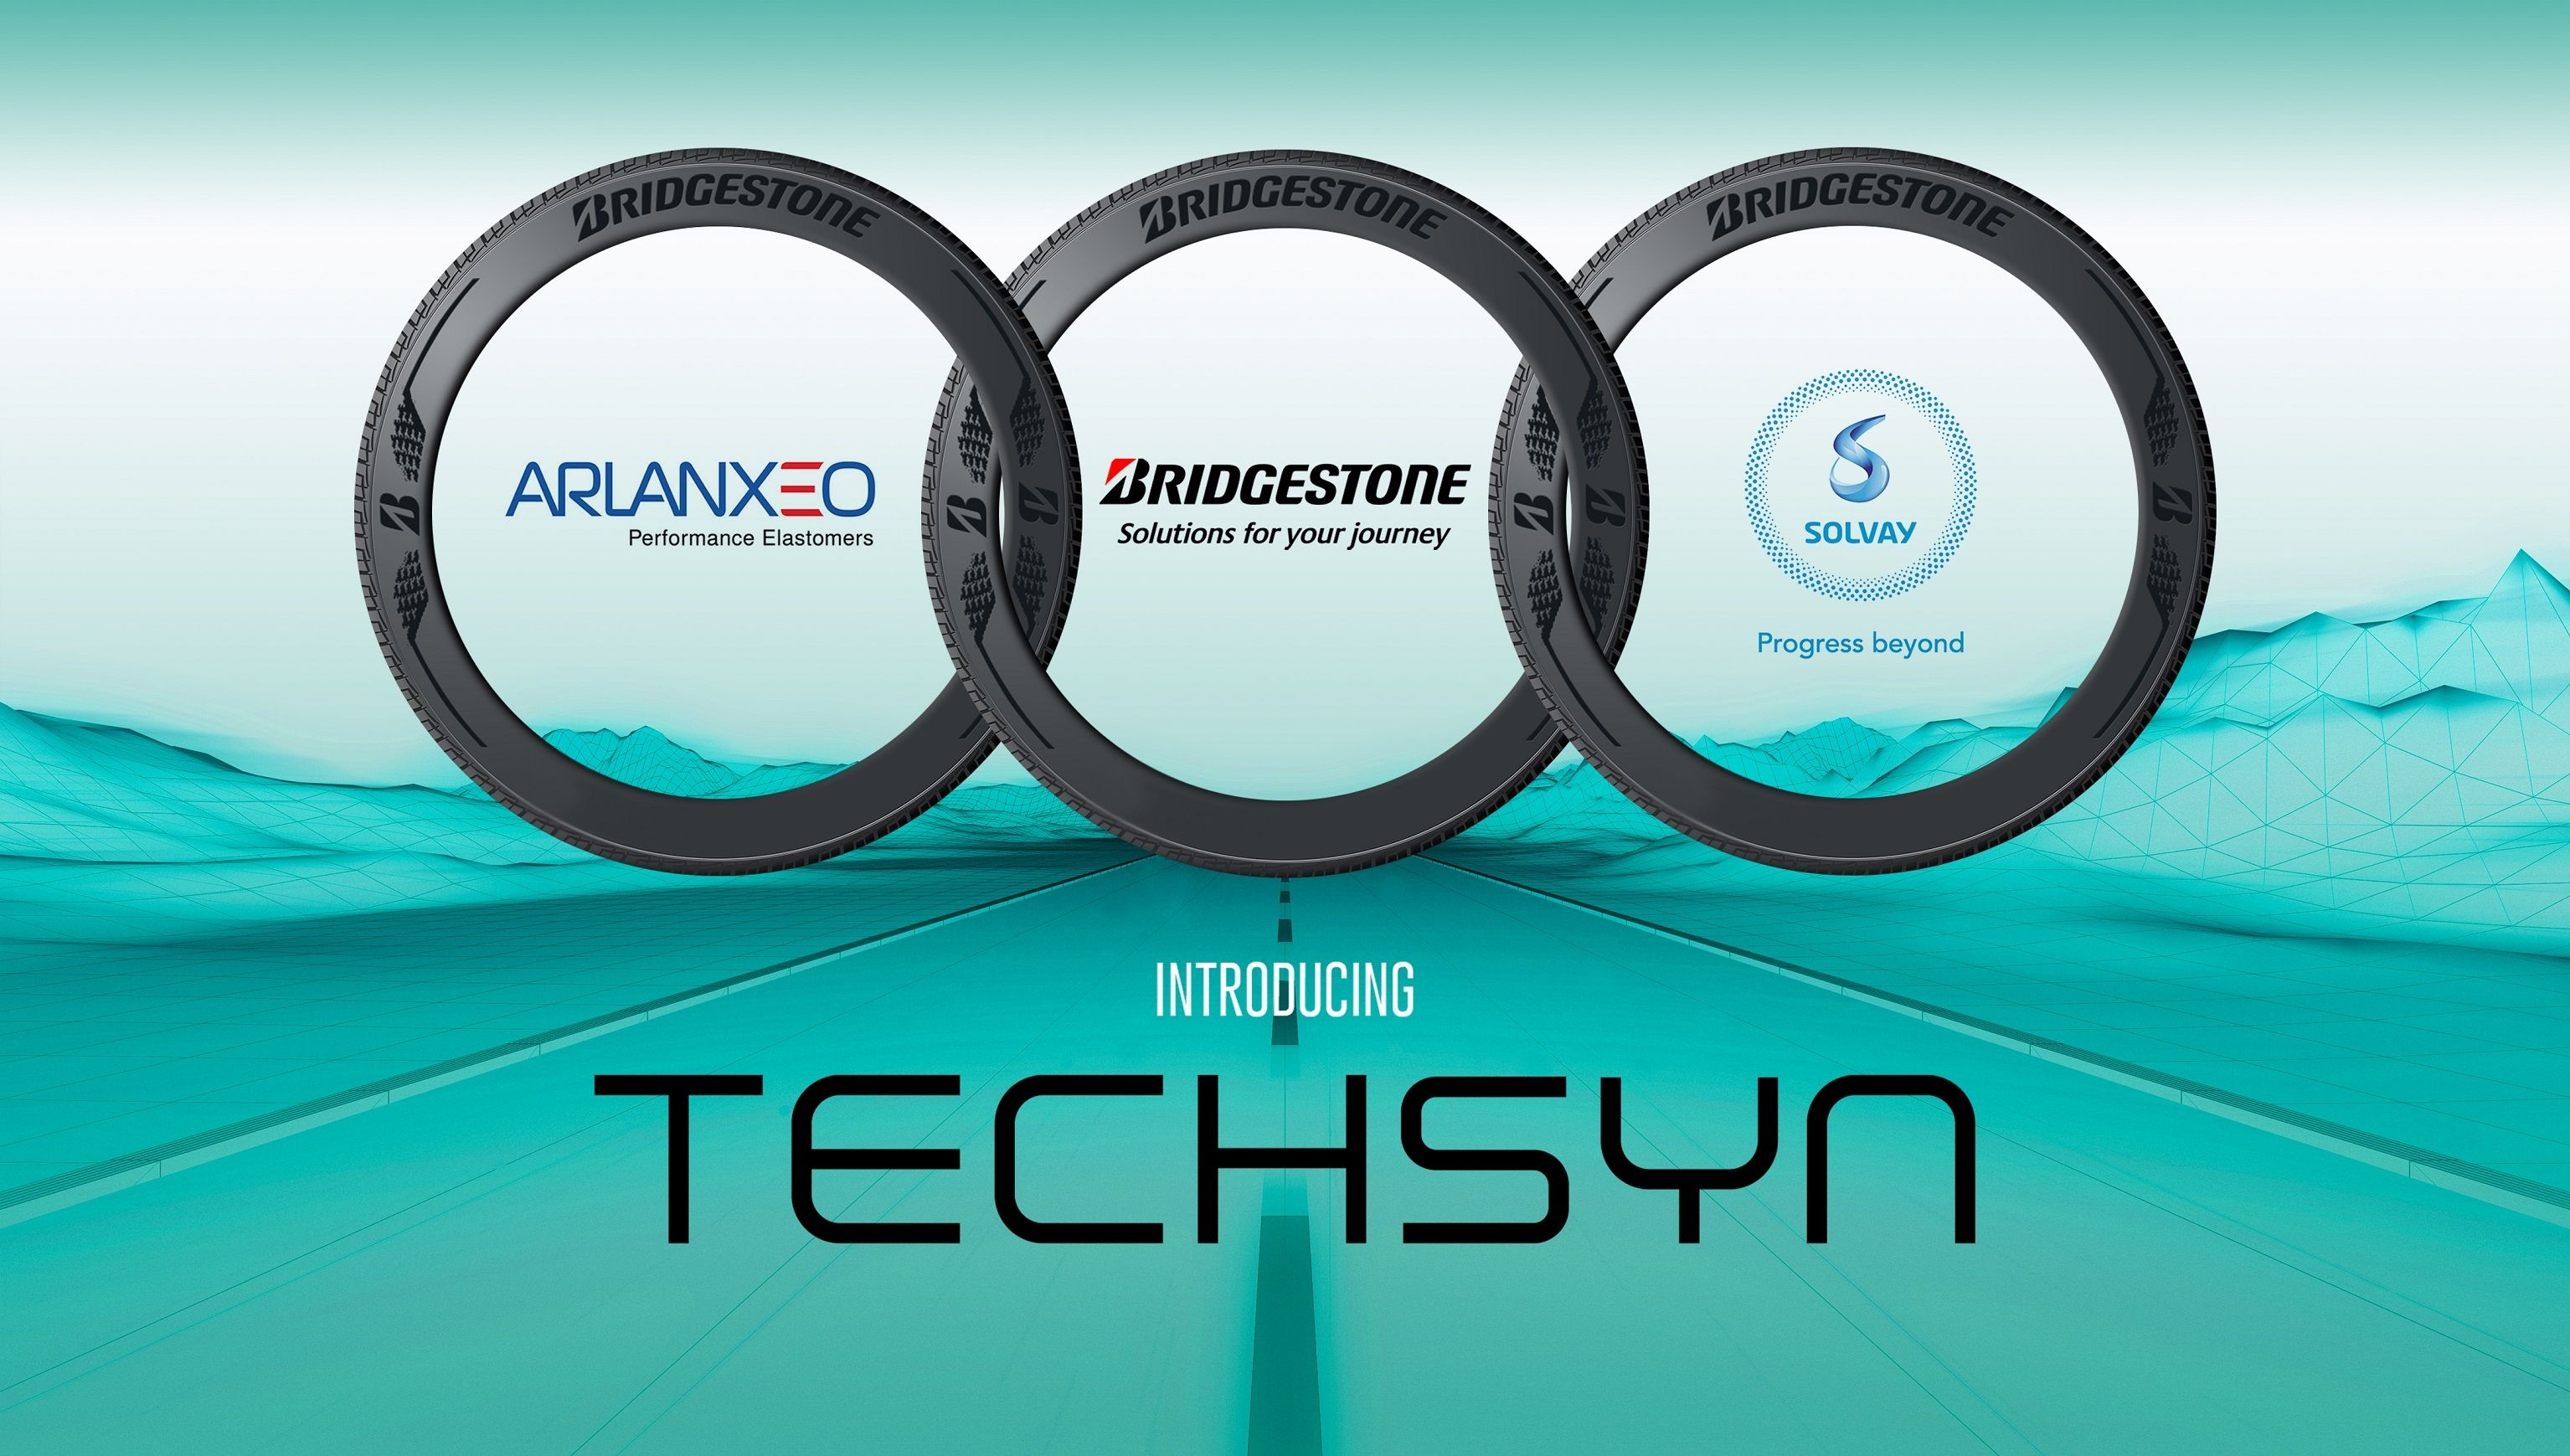 bridgestone_TECHSYN.jpeg